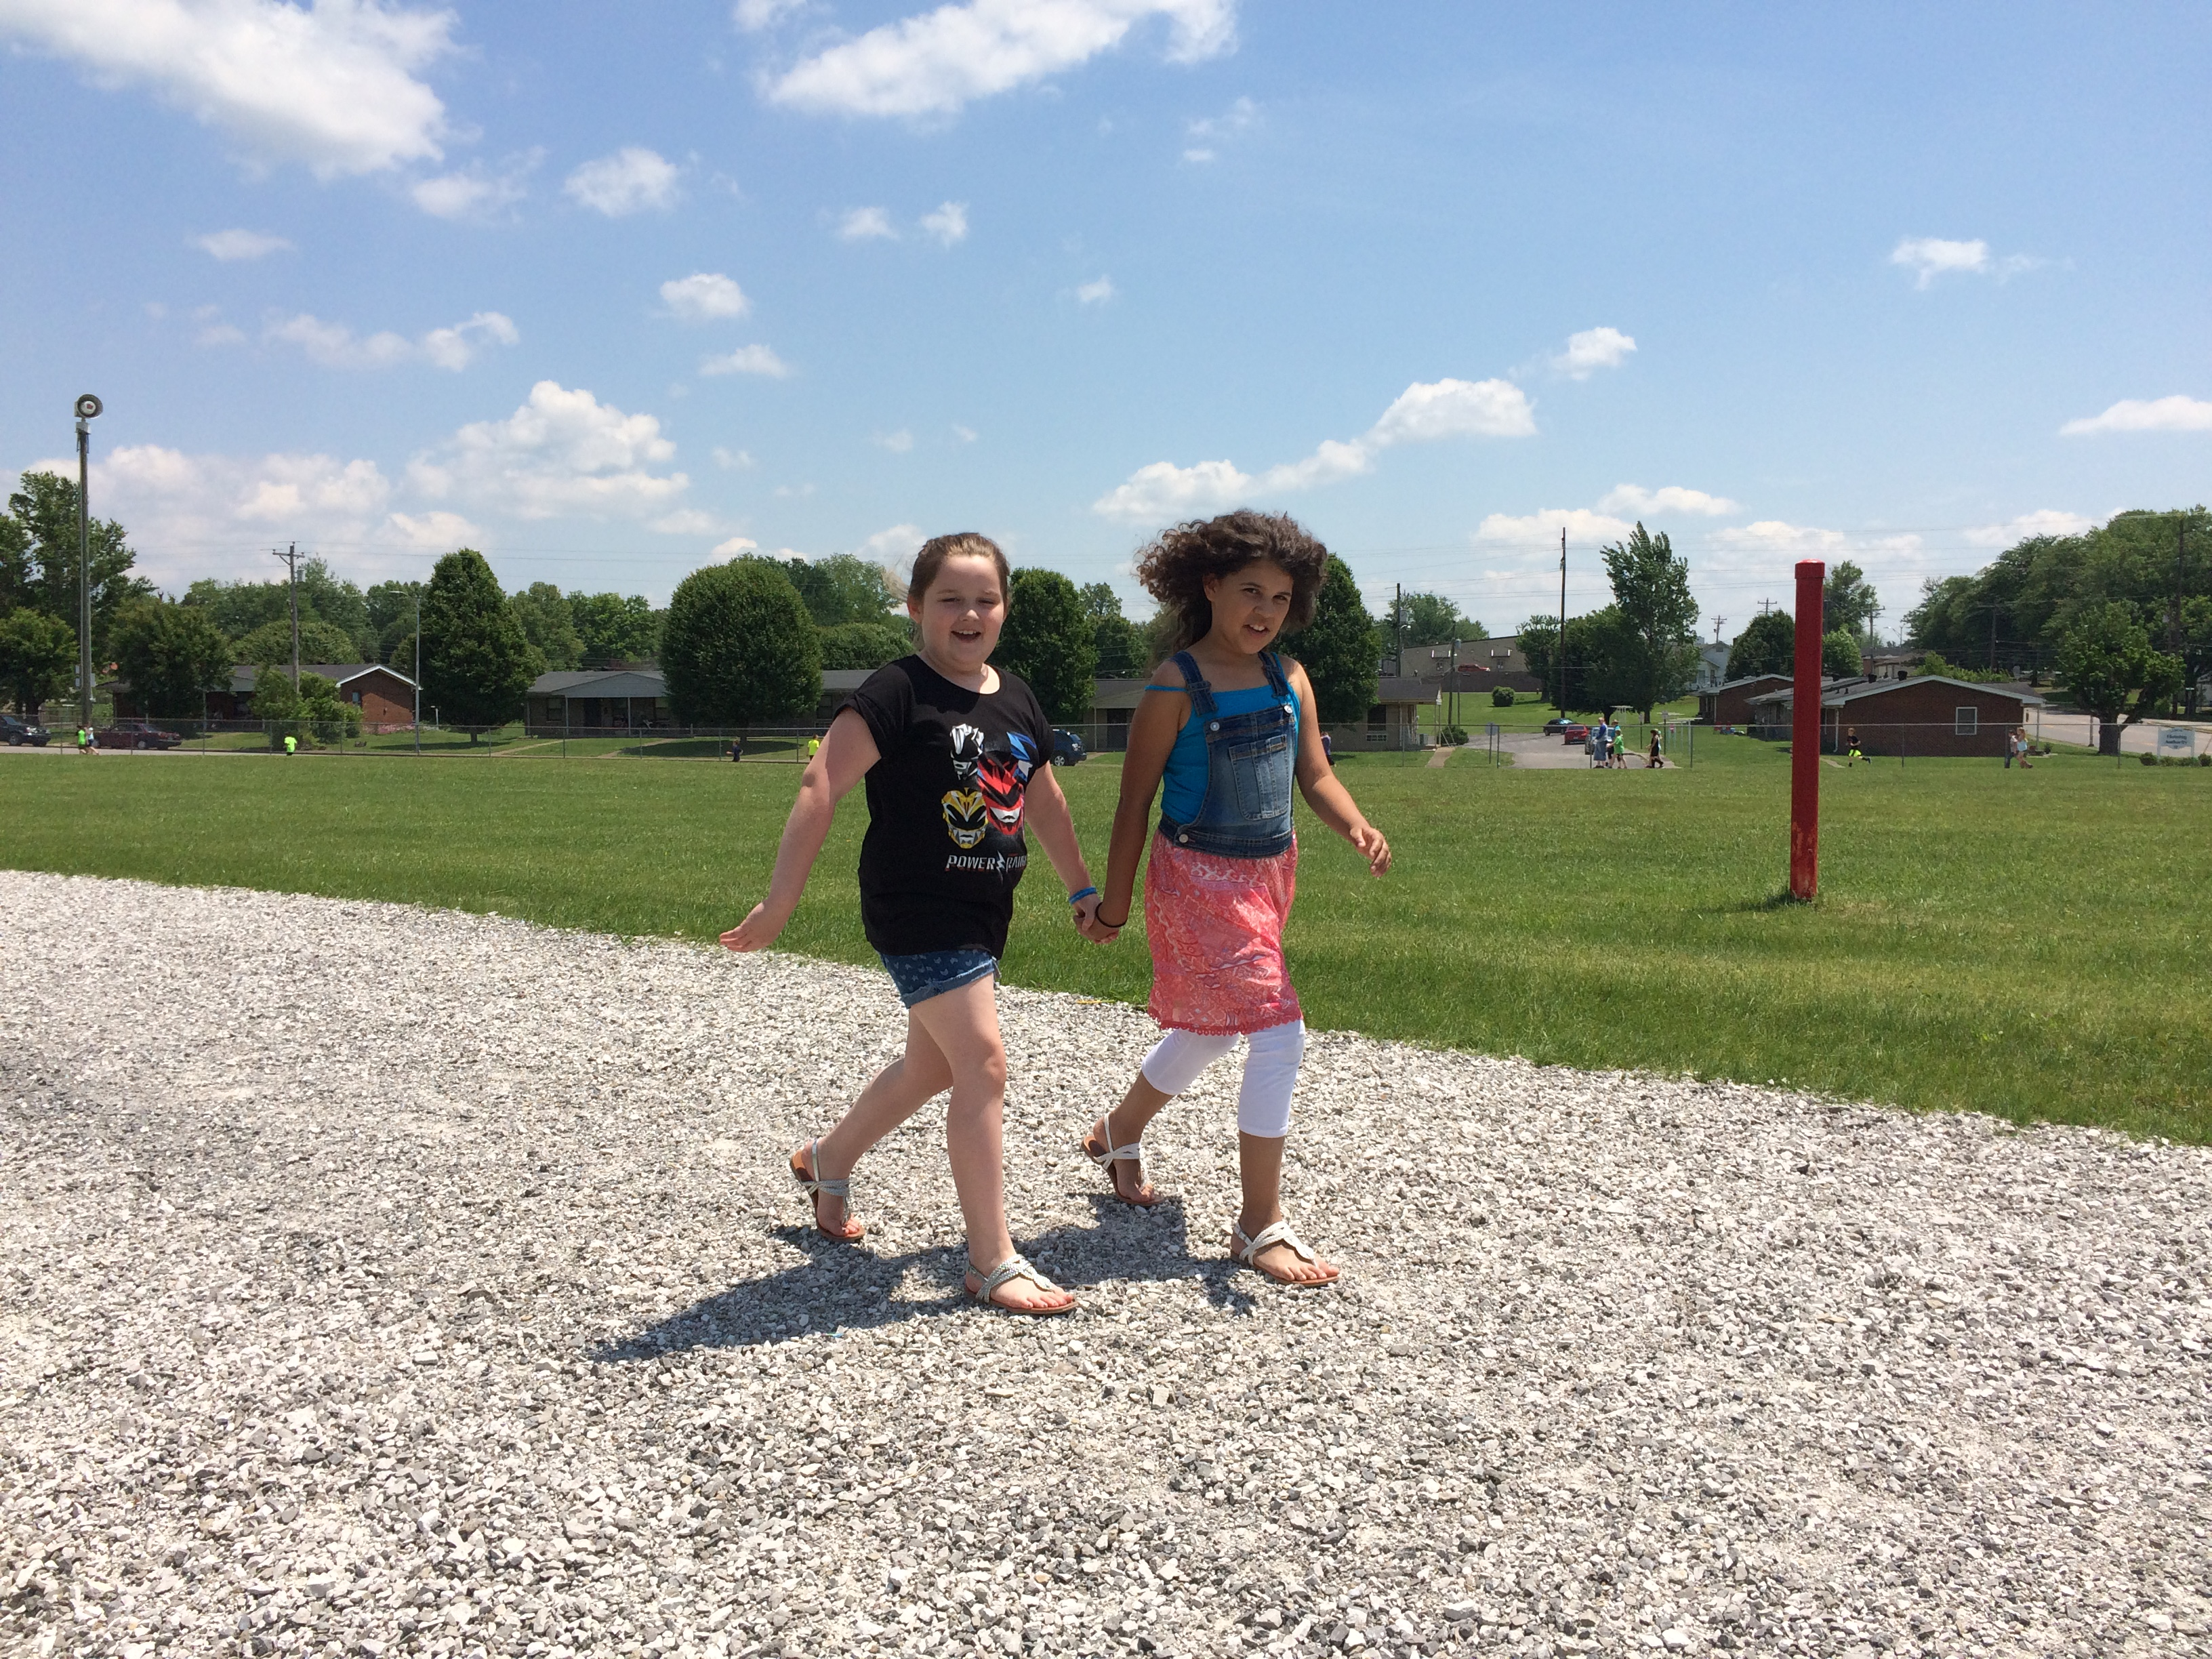 Clinton County Healthy Hometown recently added a 1/8 mile gravel walk track to the front law at AES to encourage more physical fitness activity among students.